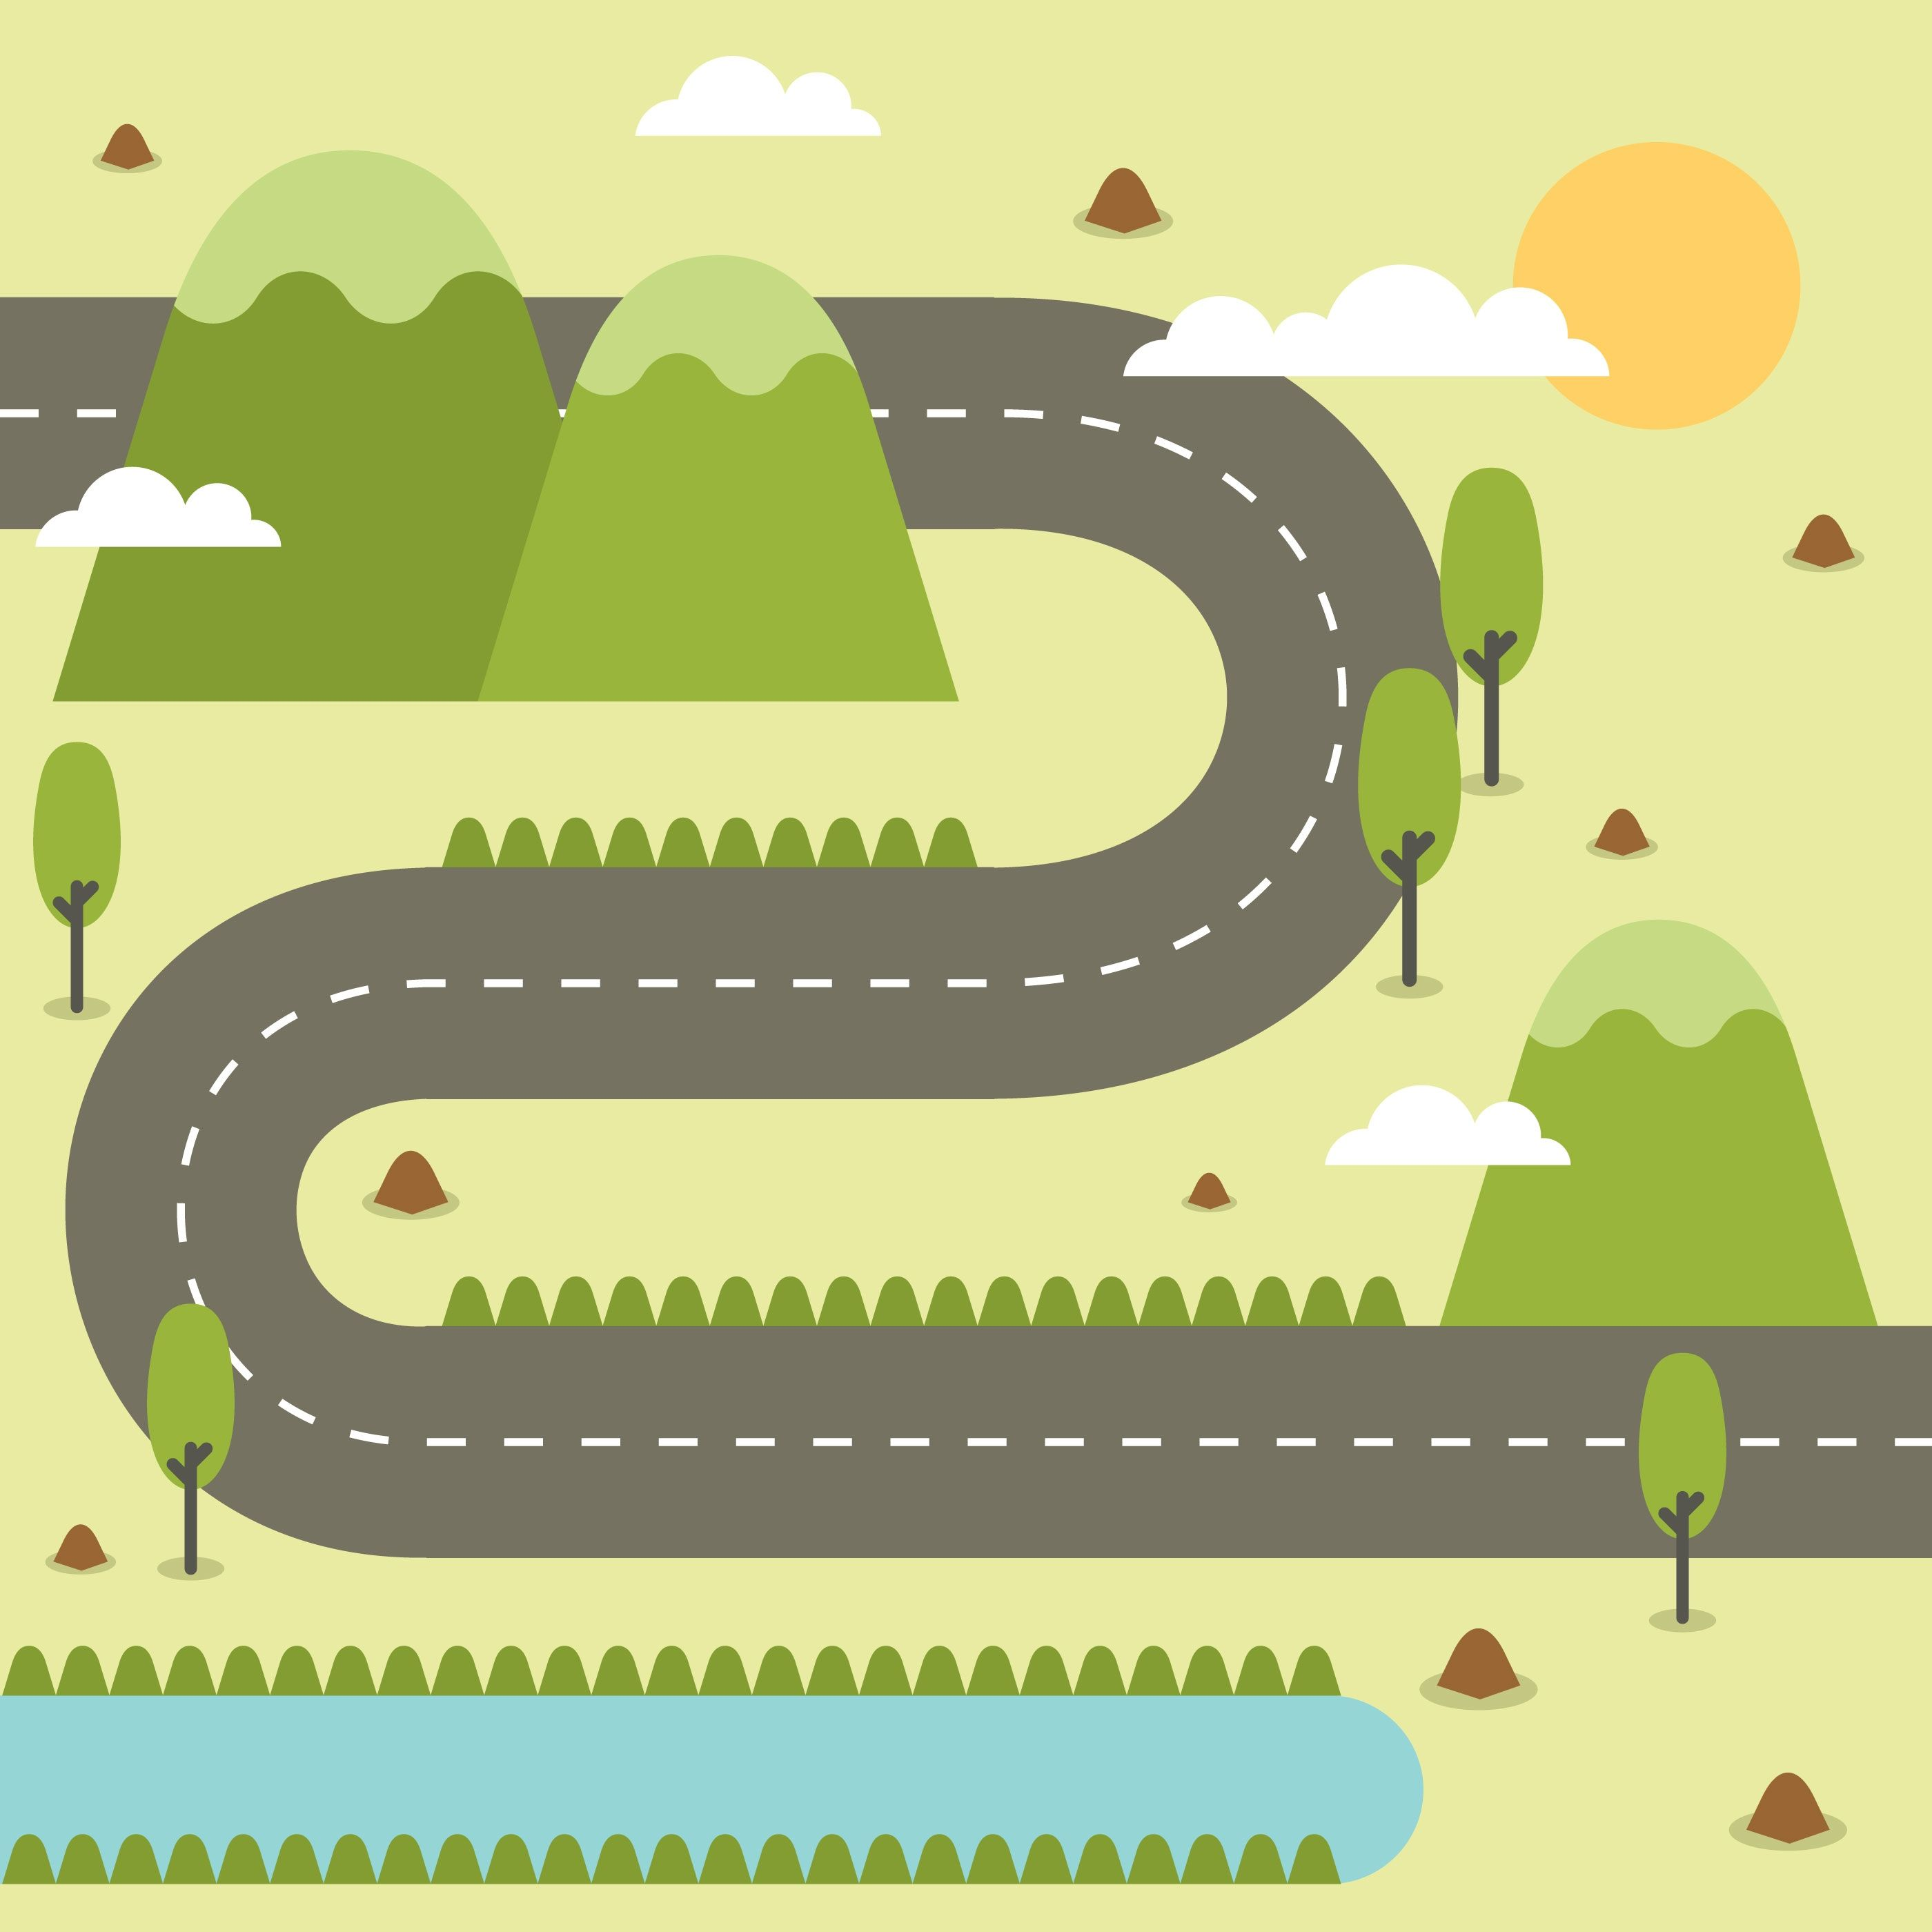 Road Map Clipart Images In 2021 Illustrated Map Maps Illustration Design Road Map Design